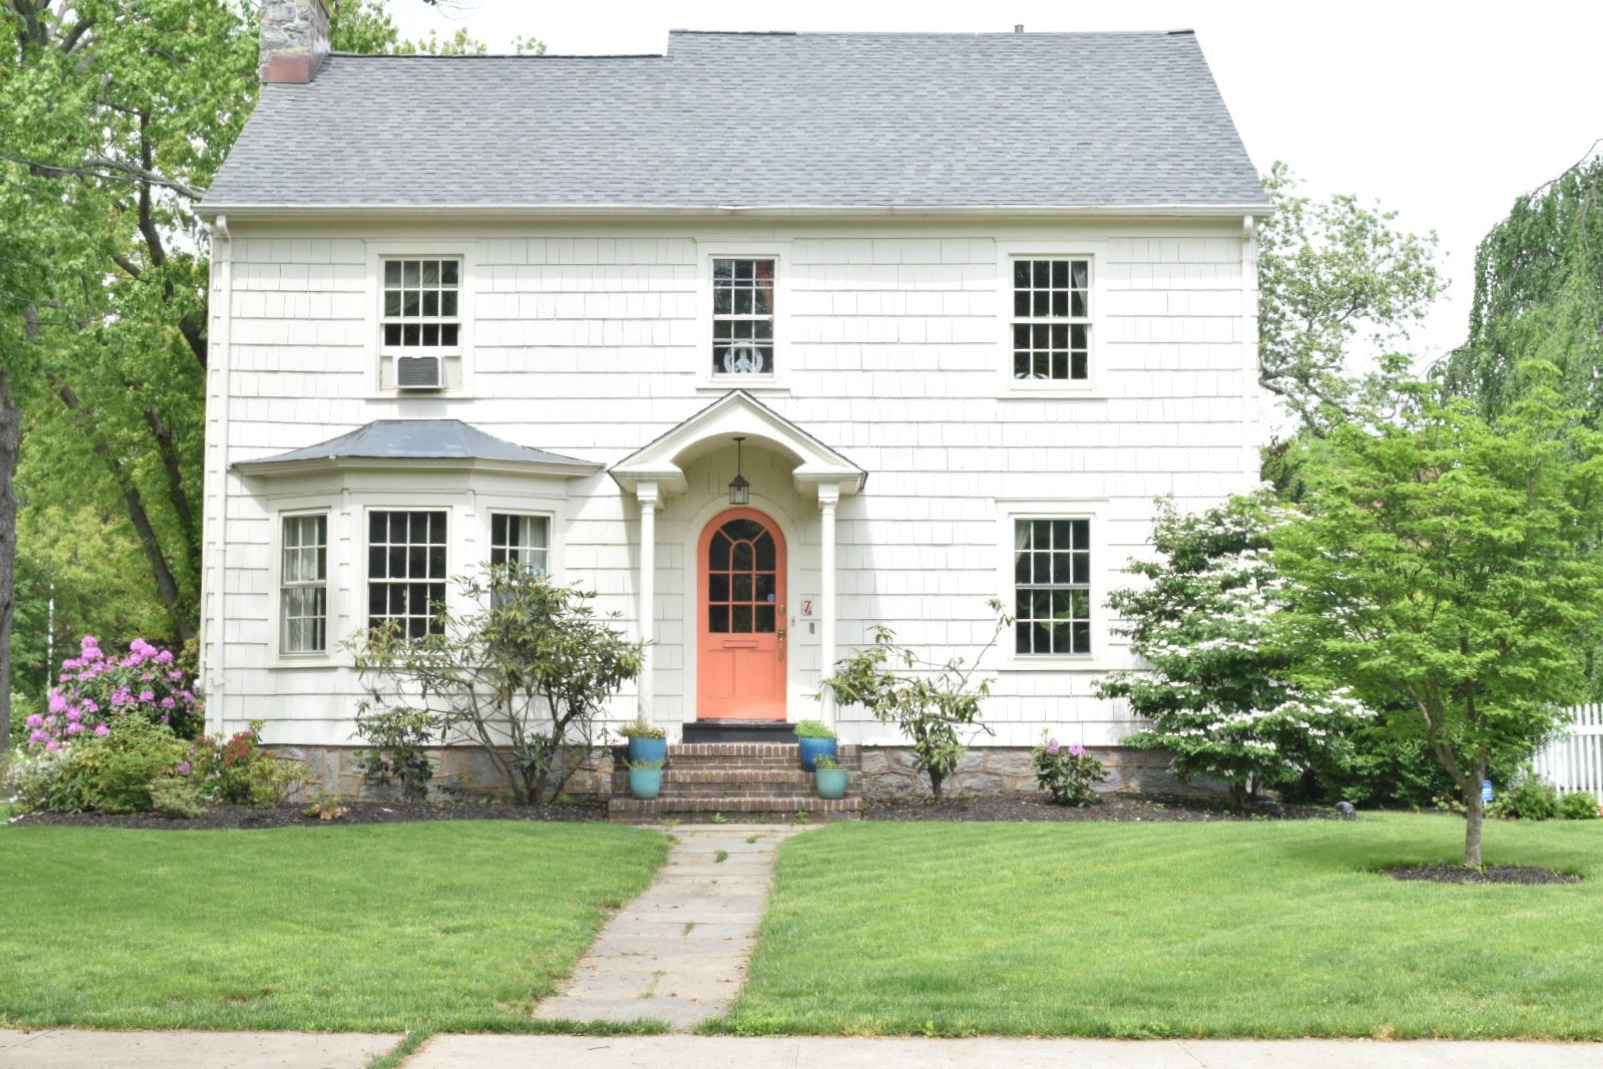 Home Exterior Color Ideas Part - 32: Exterior Paint Colors For Homes- New England Style